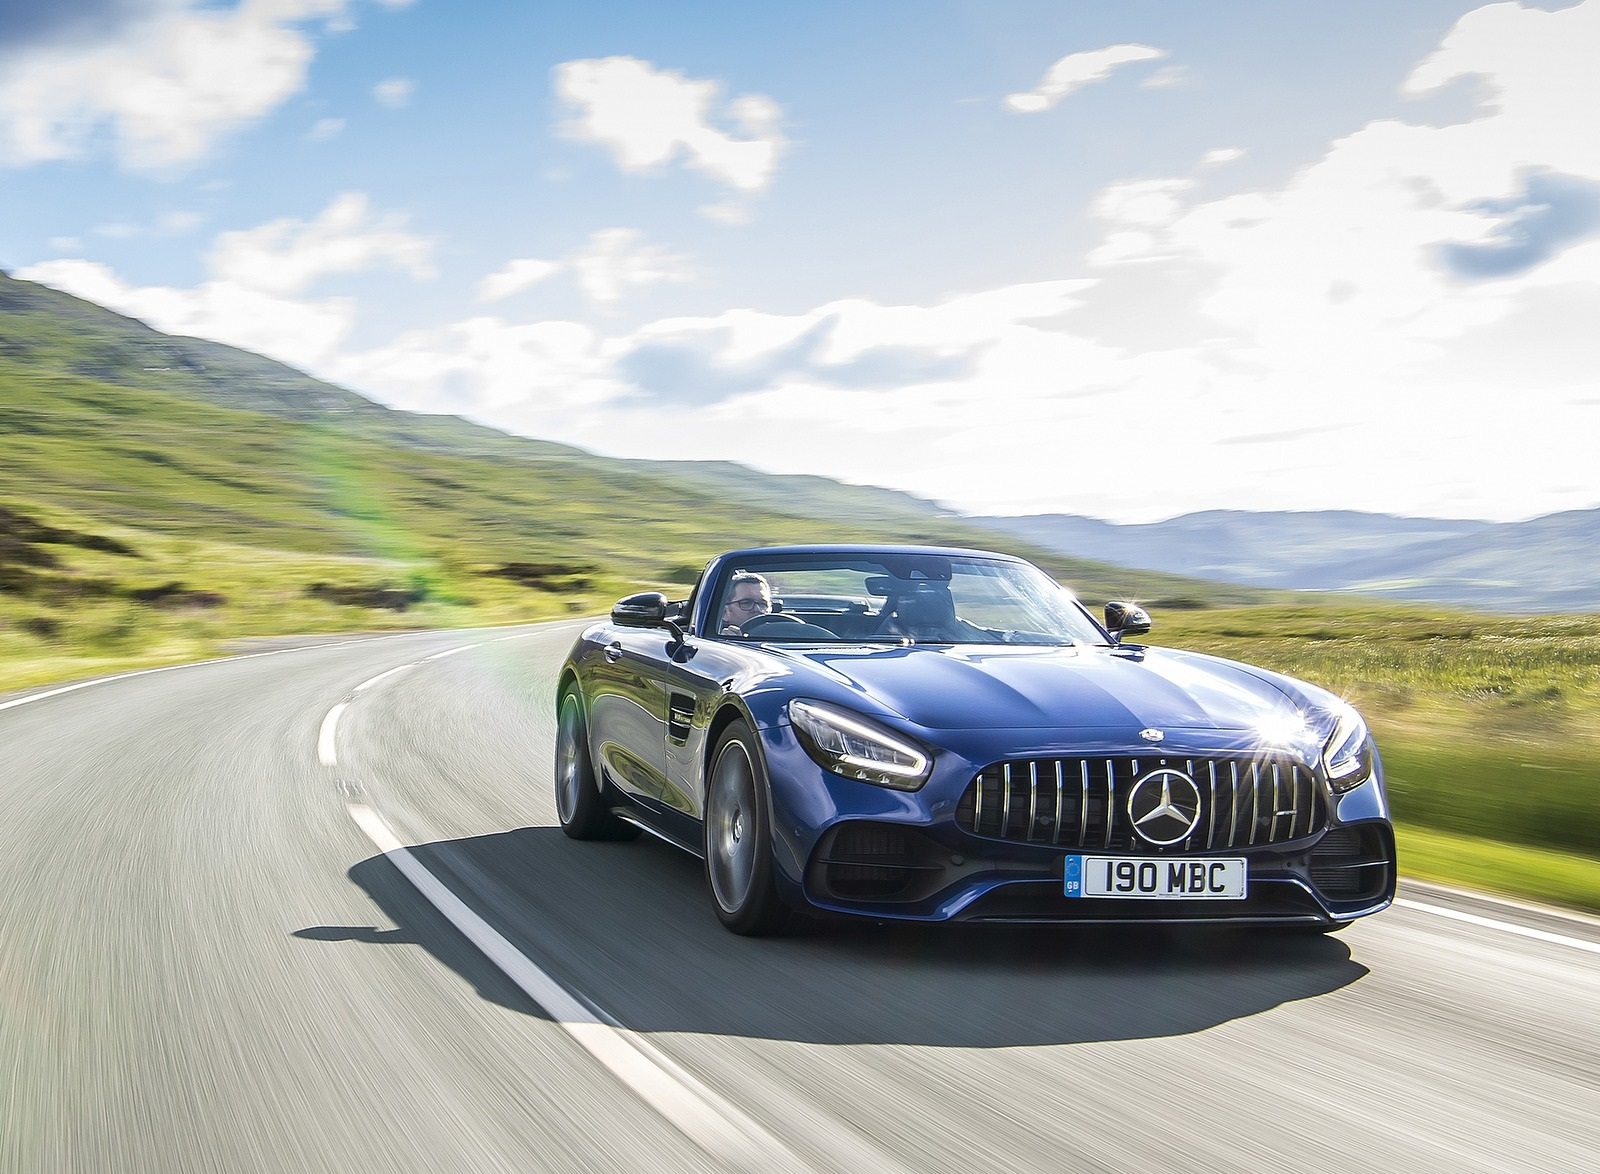 2020 Mercedes-AMG GT S Roadster (UK-Spec) Front Three-Quarter Wallpapers (9)